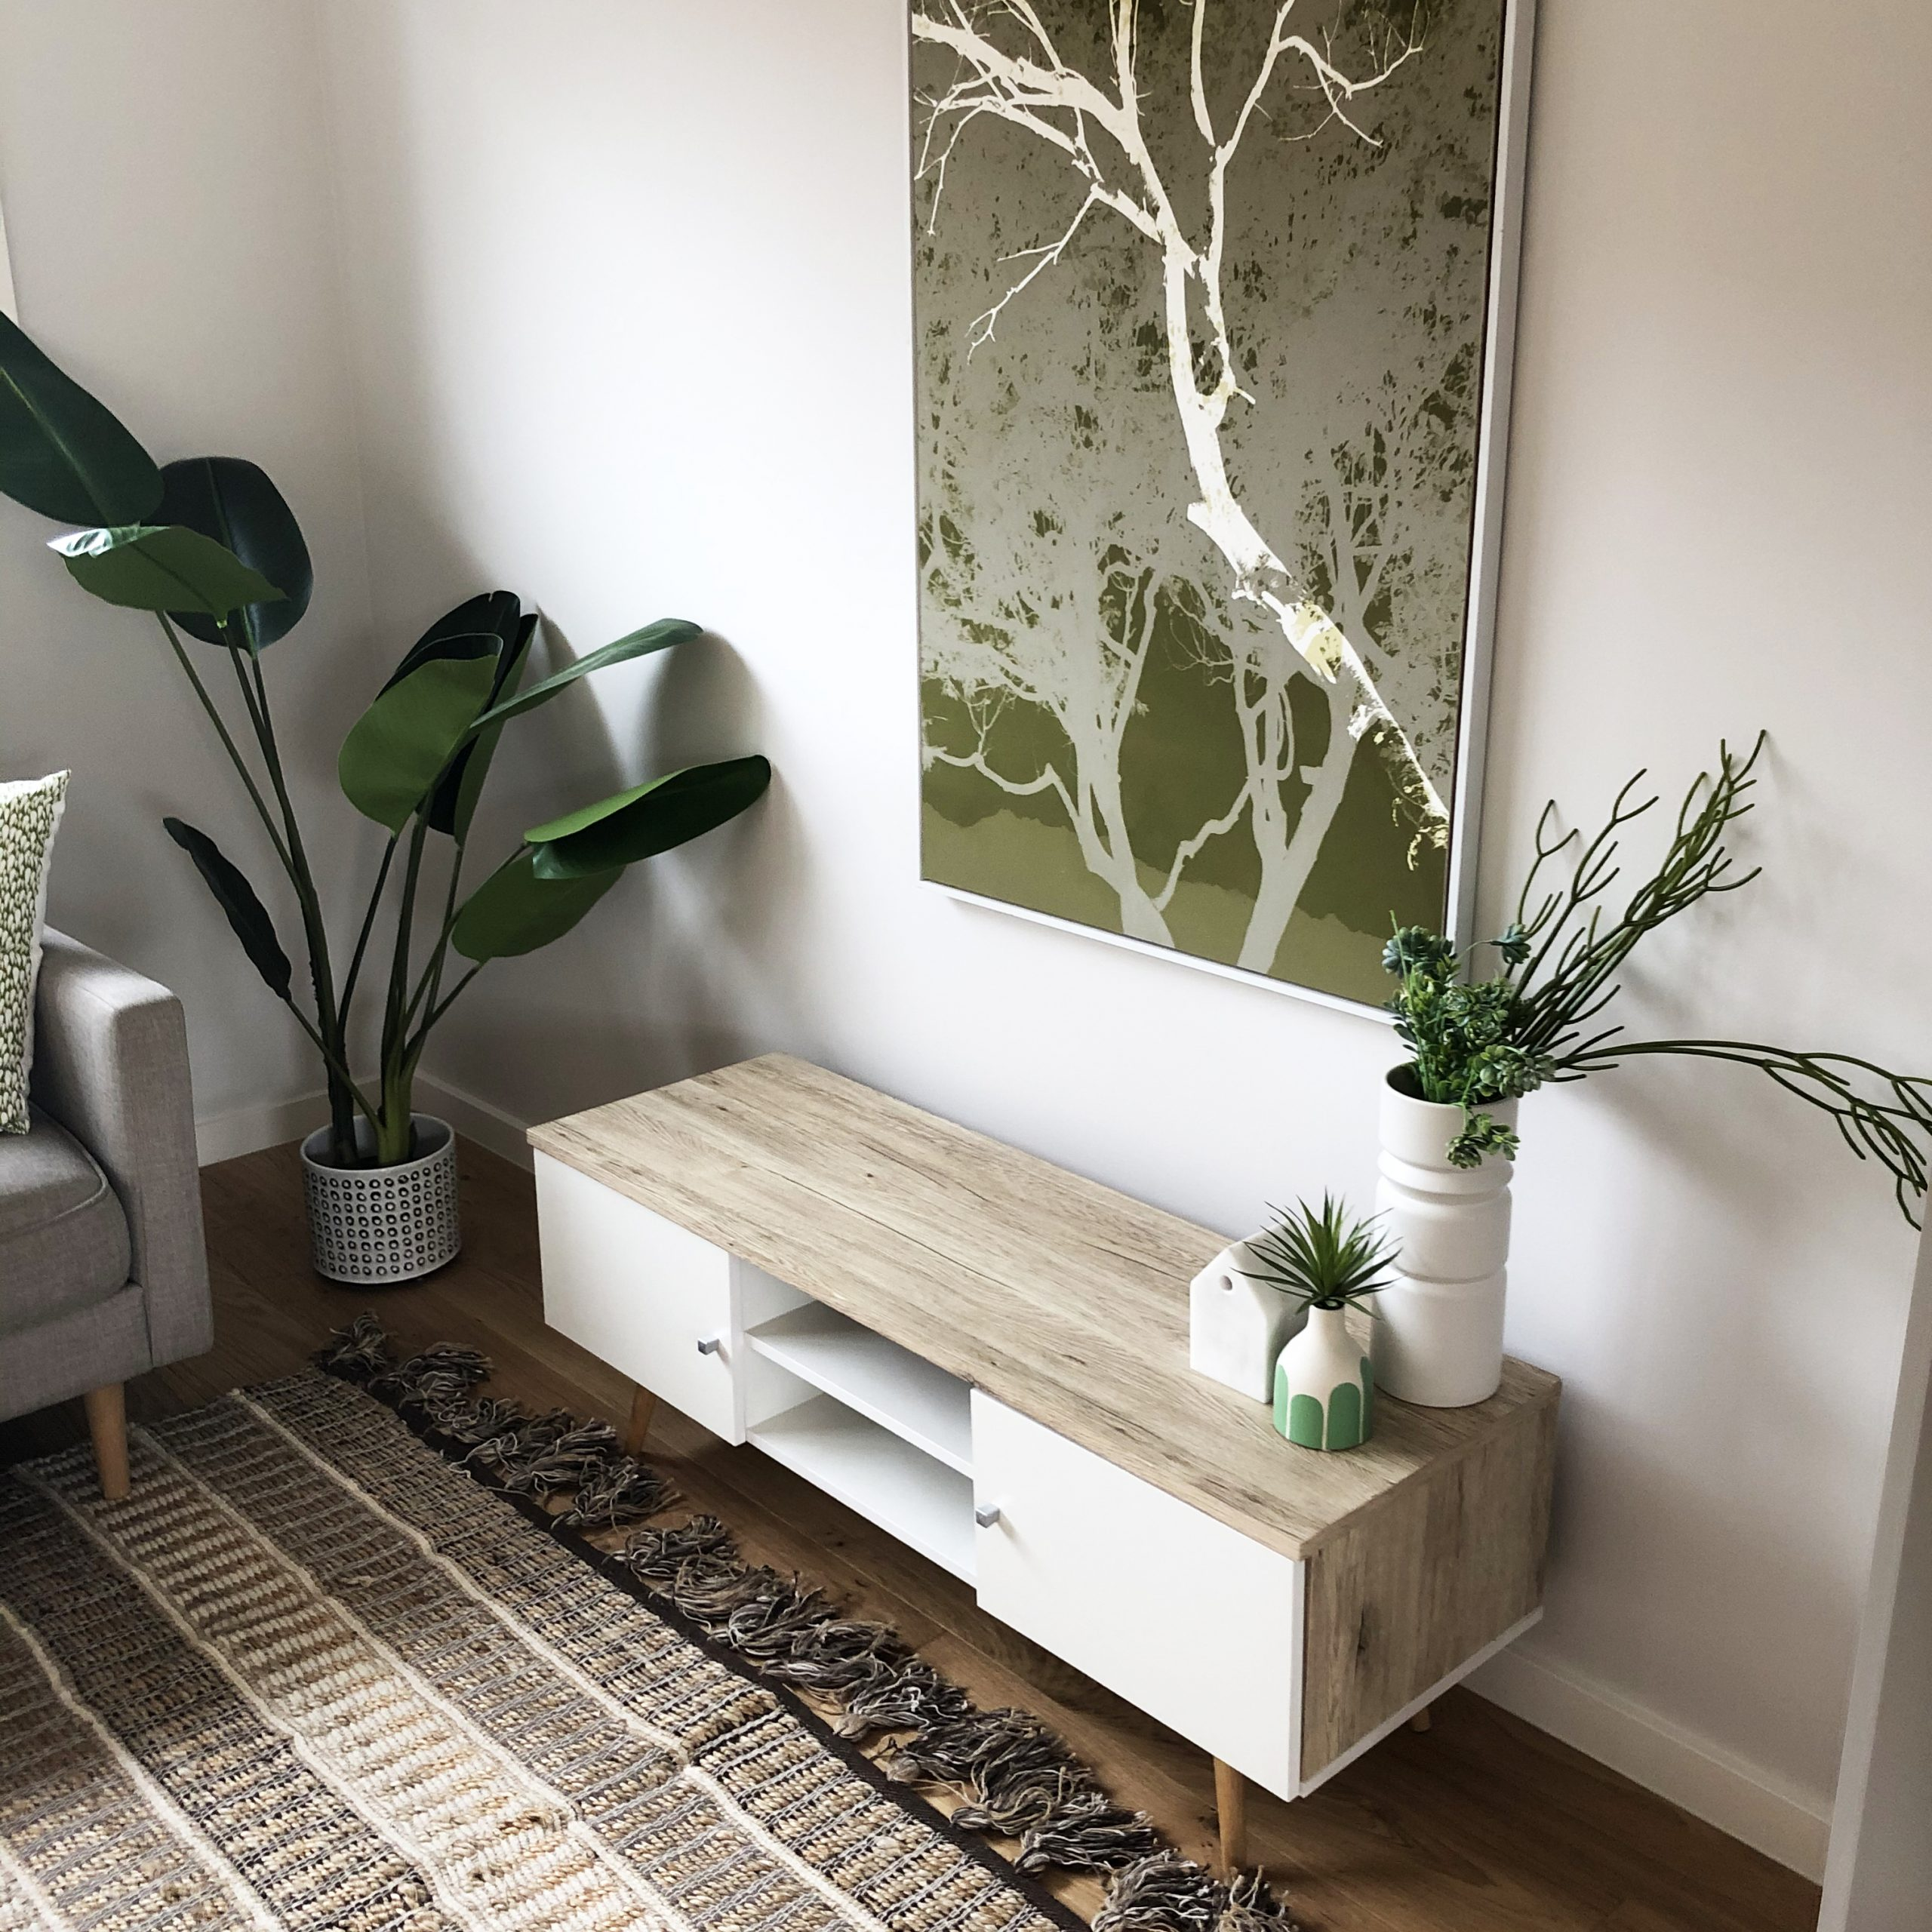 Styled living space with green artwork - Melbourne Home Staging - Leeder Interiors